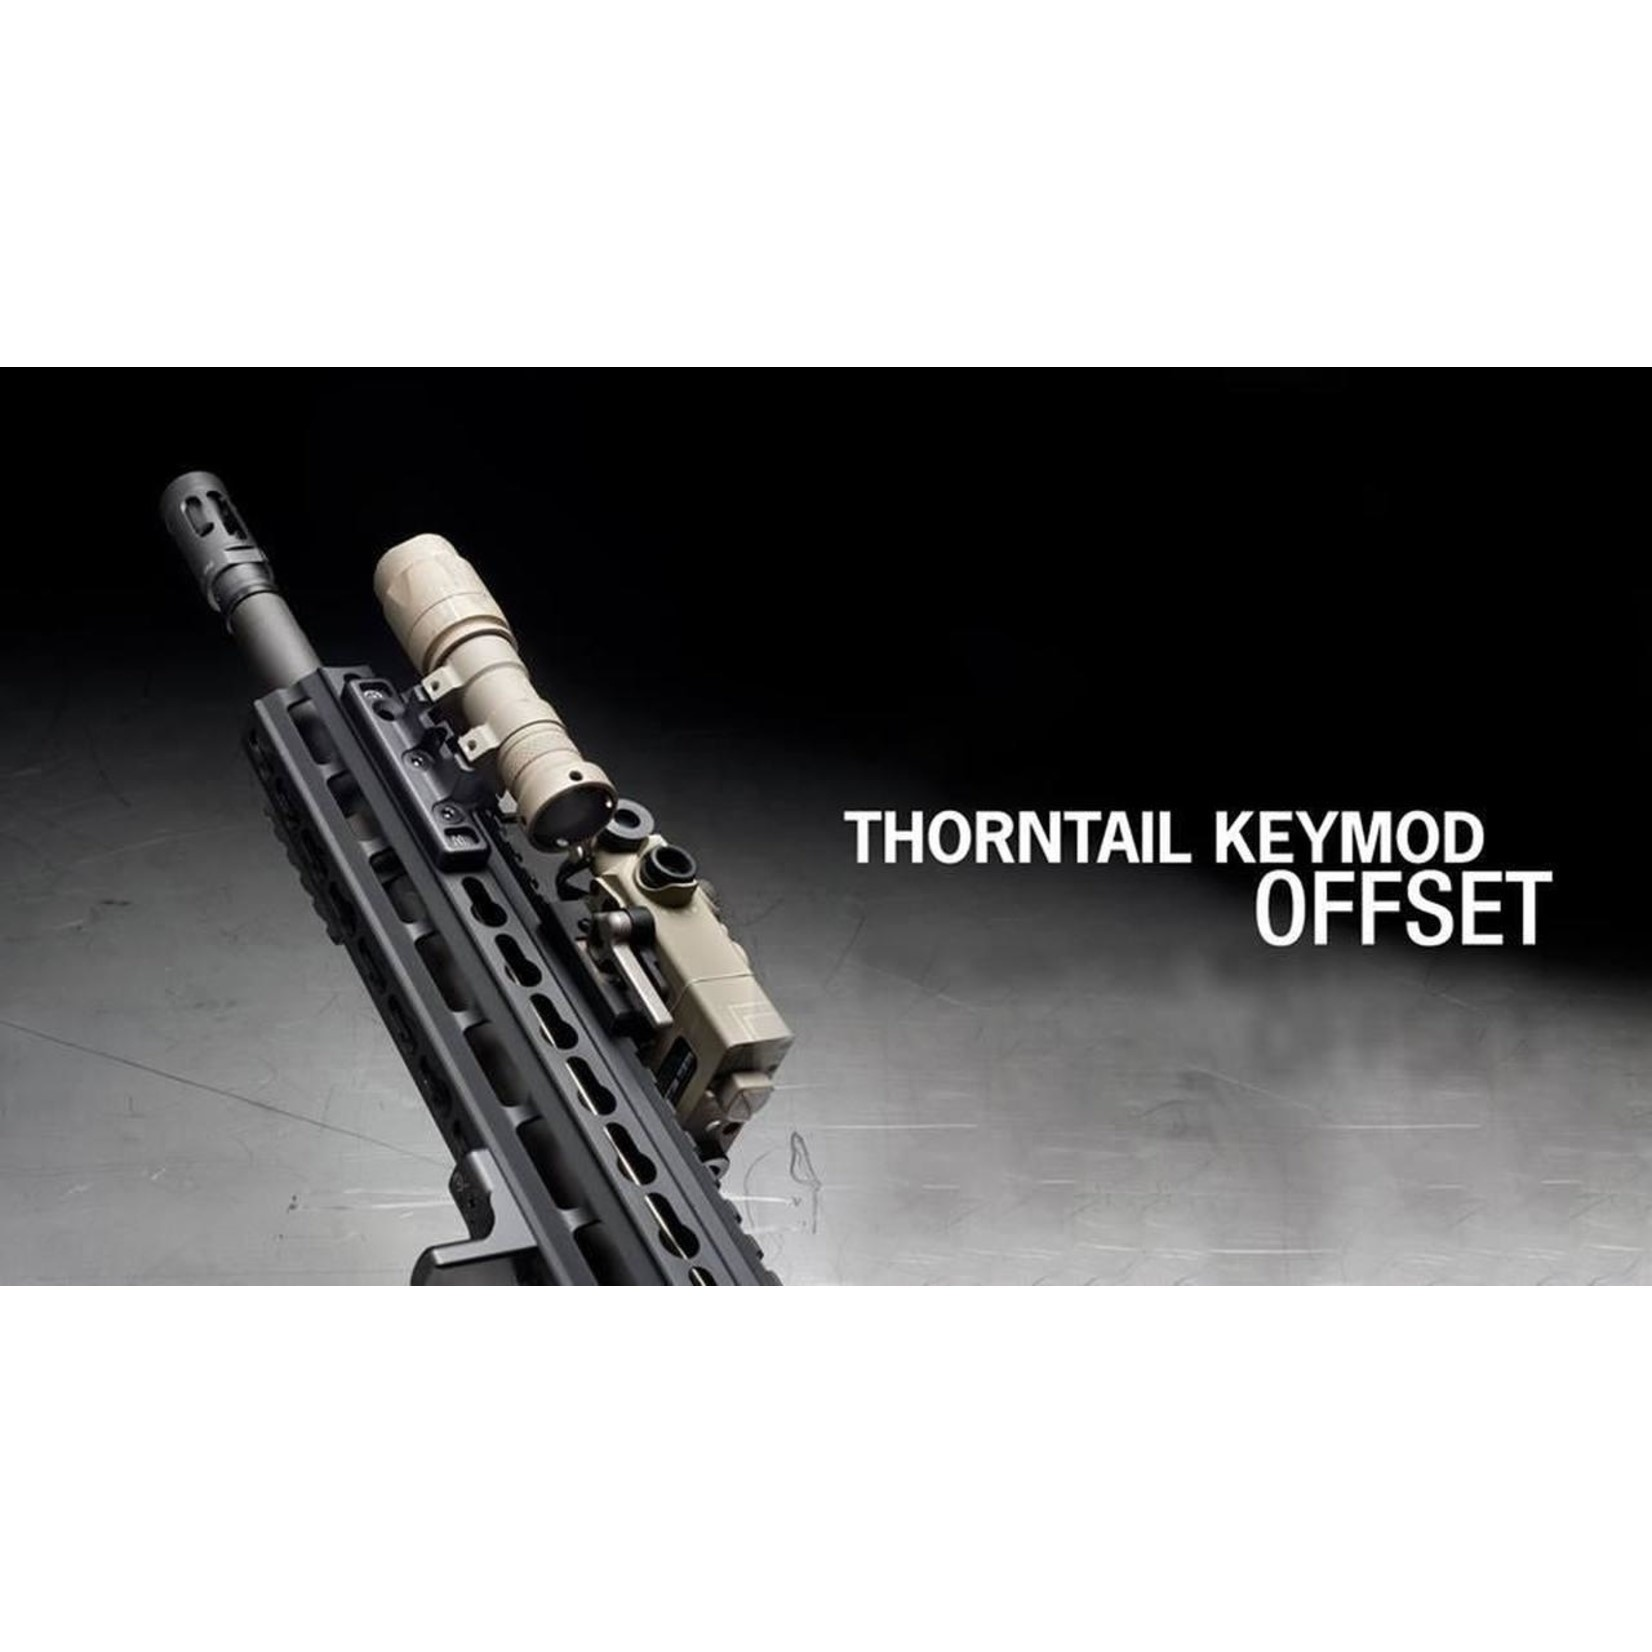 HALEY STRATEGIC PARTNERS THORNTAIL KEYMOD LIGHT MOUNT